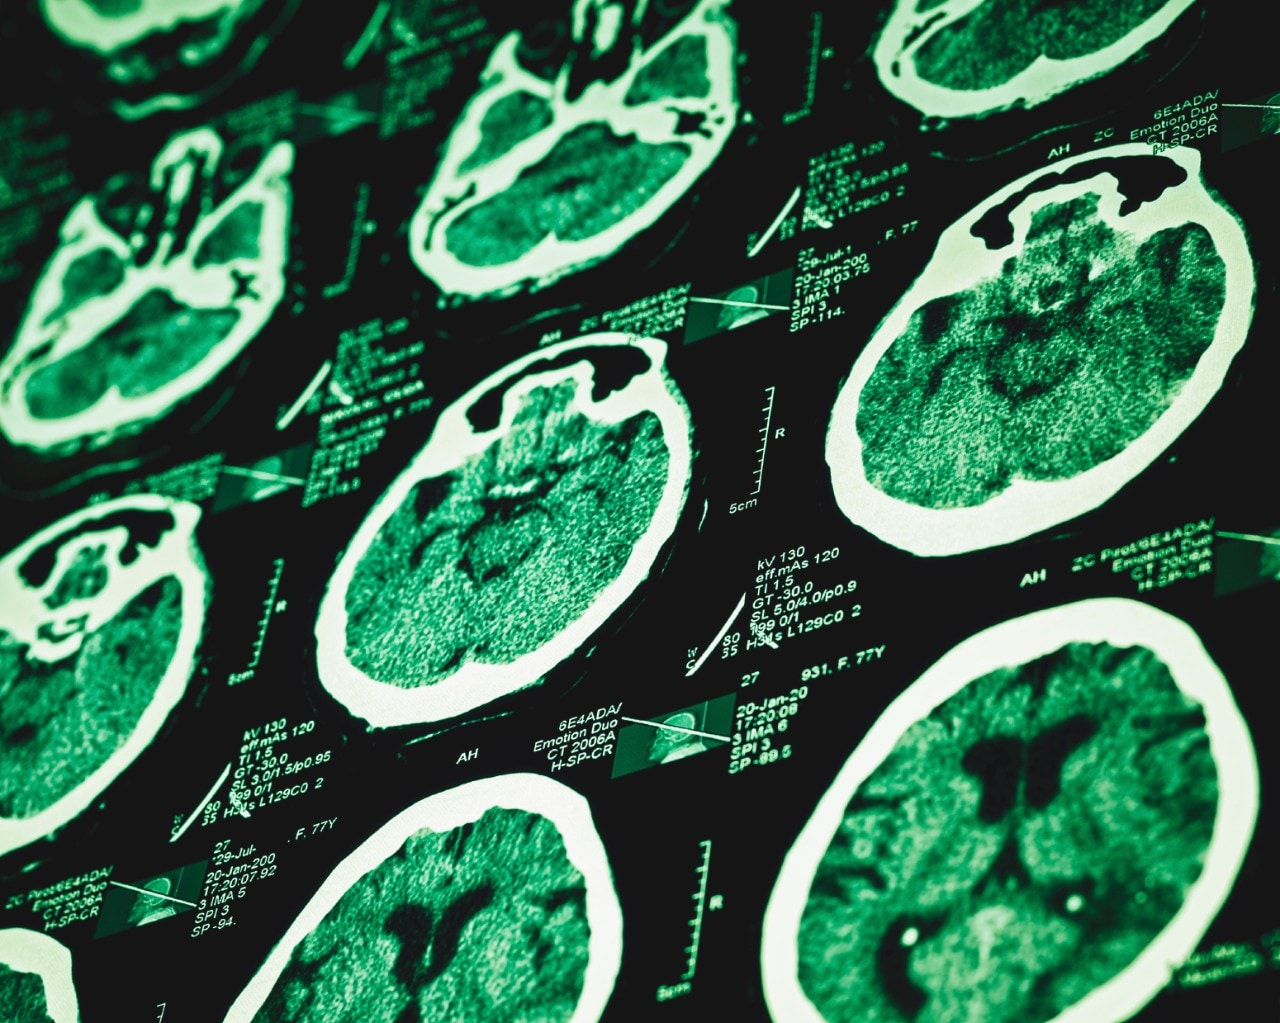 Brain Differences In Adhd >> Imaging Study Confirms Differences In Adhd Brains The University